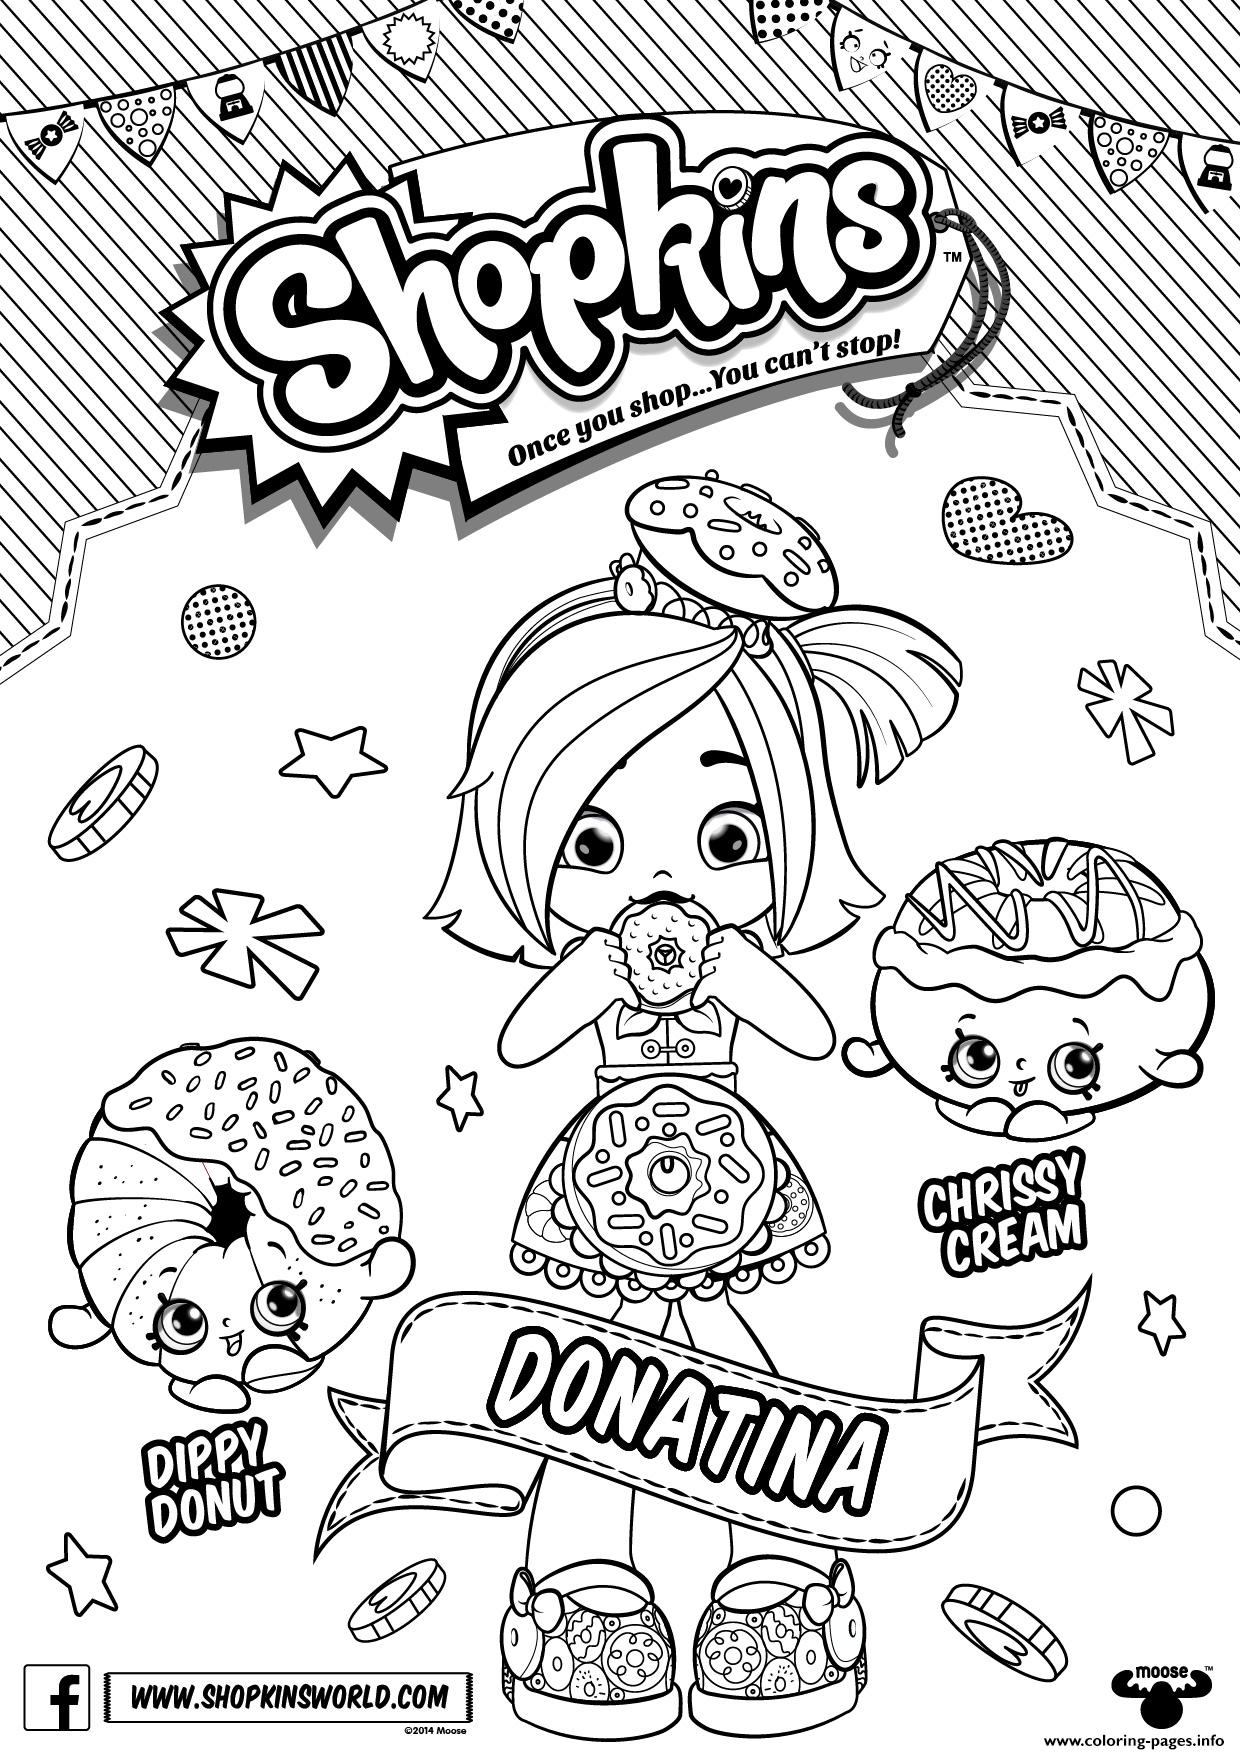 Shopkins Season 6 Doll Chef Club Donatina Coloring Pages Print Download 454 Prints